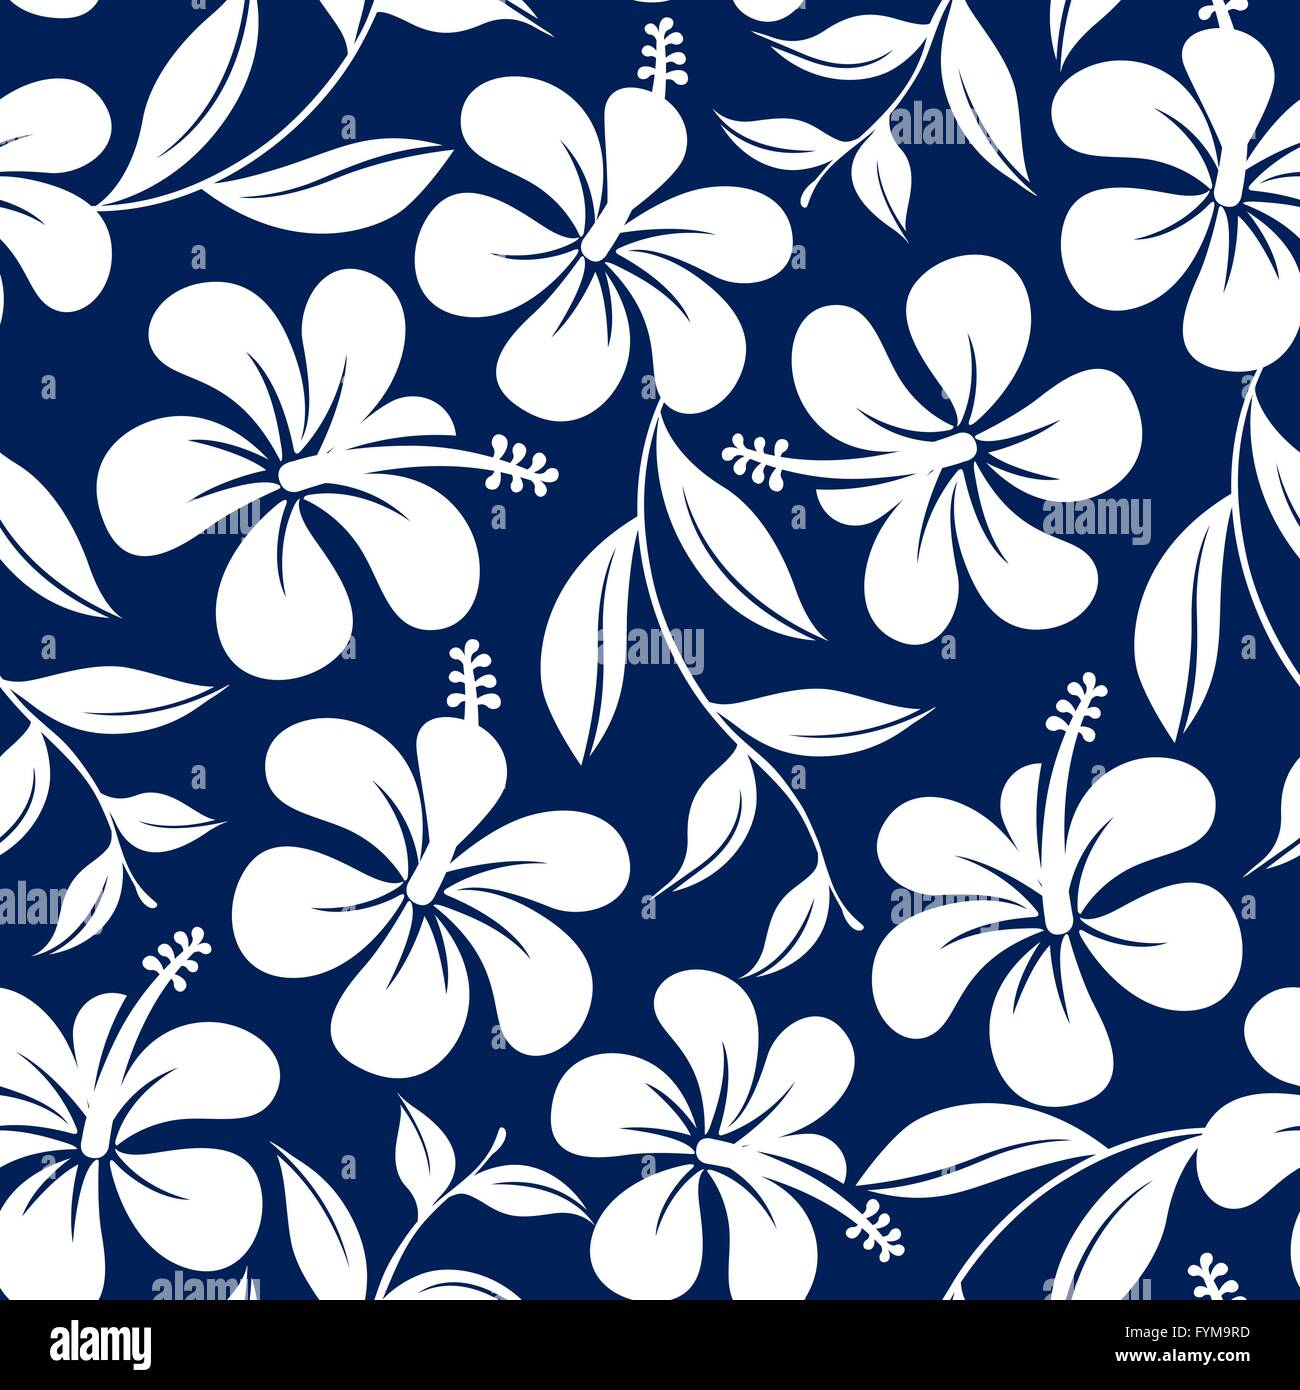 Blue And White Tropical Hibiscus Flowers And Leaves Seamless Pattern